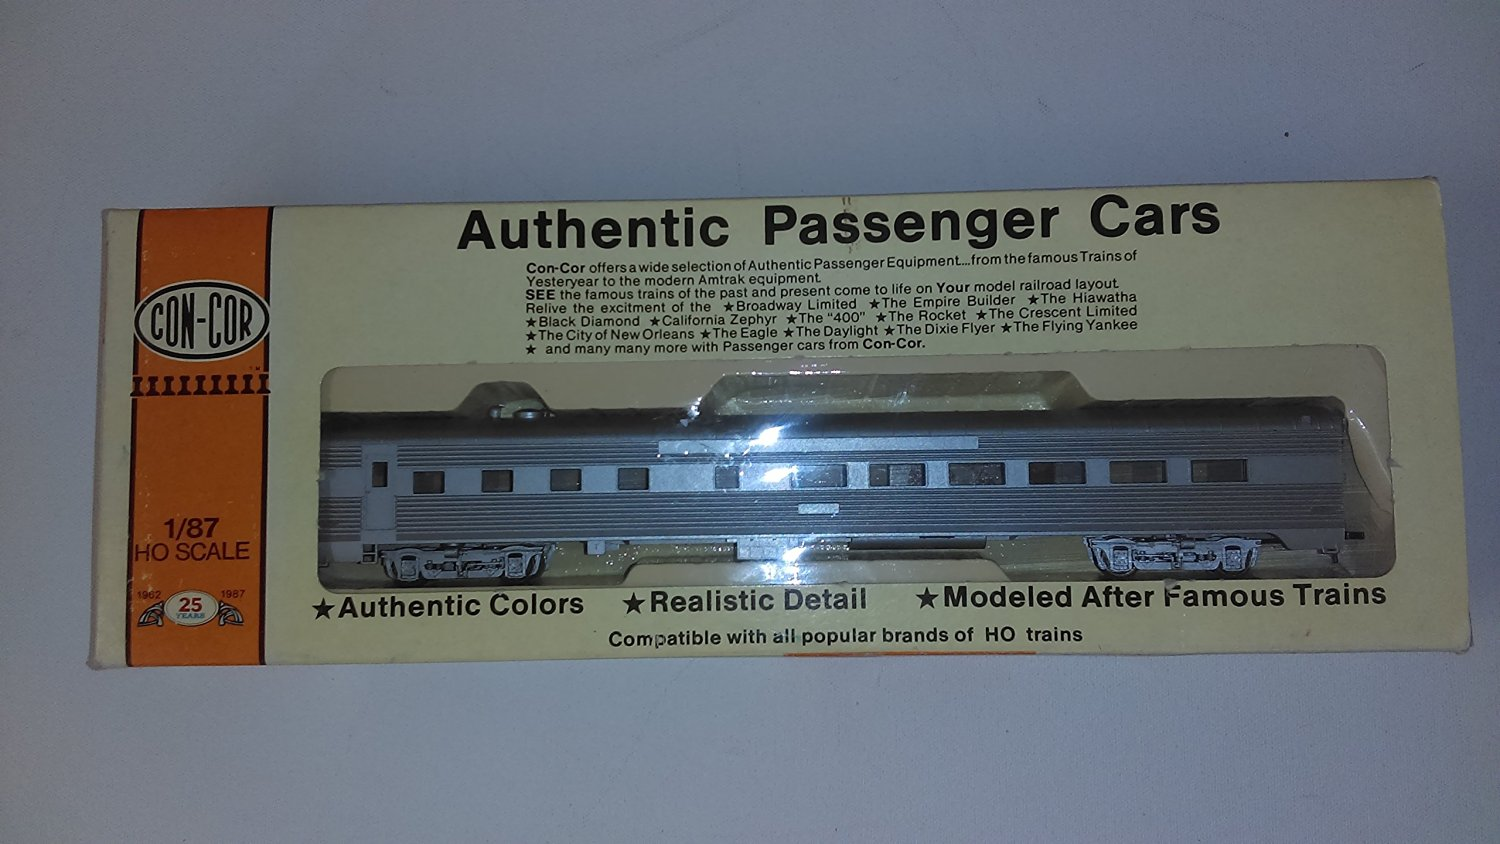 Authentic Passenger Cars 1/87 Scale